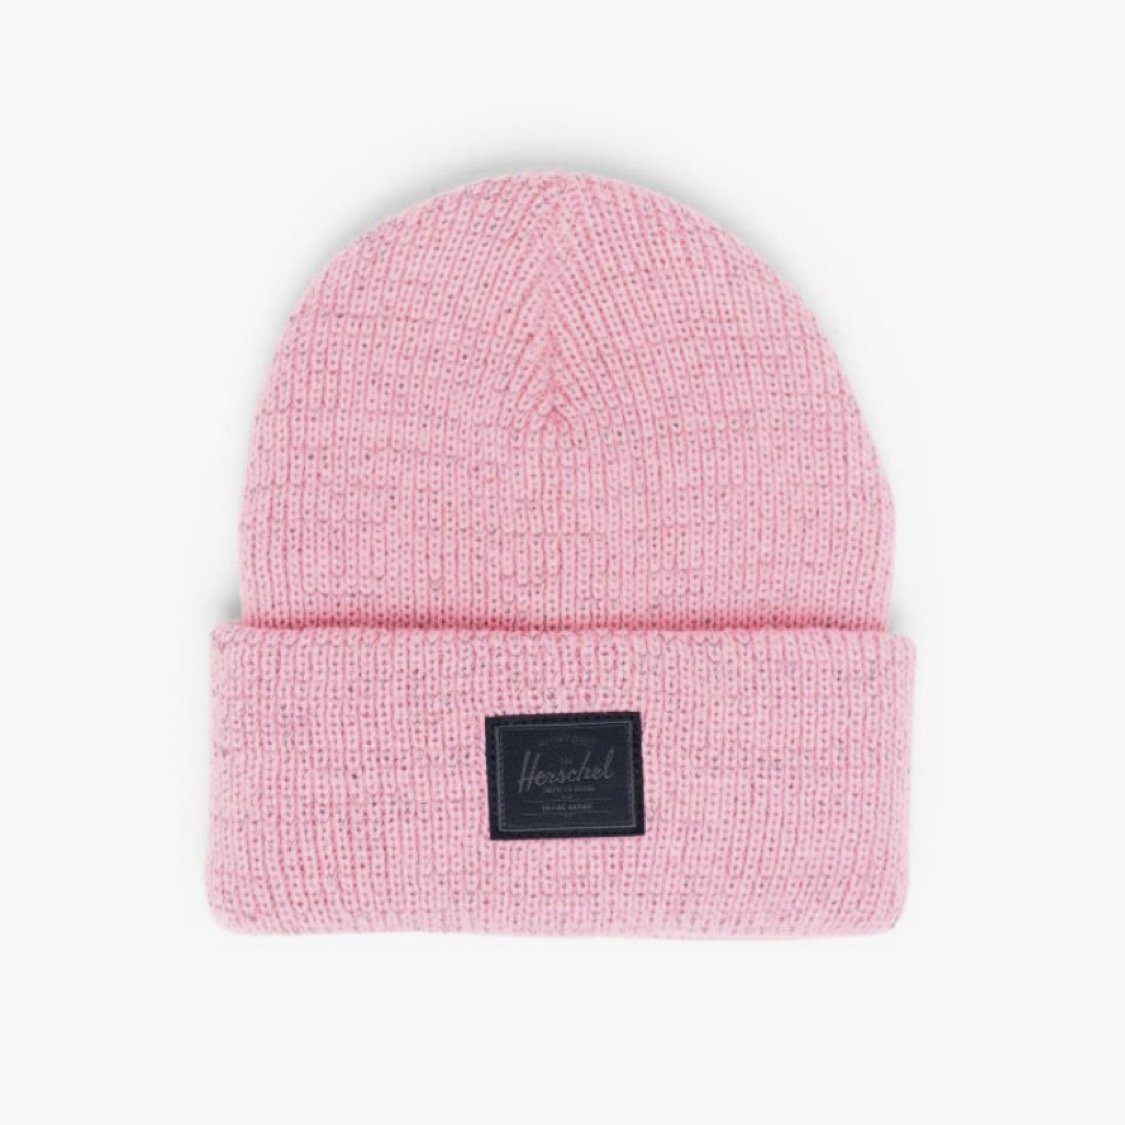 Herschel - Abbott Youth Beanie Hat - Flamingo Pink Hats Herschel